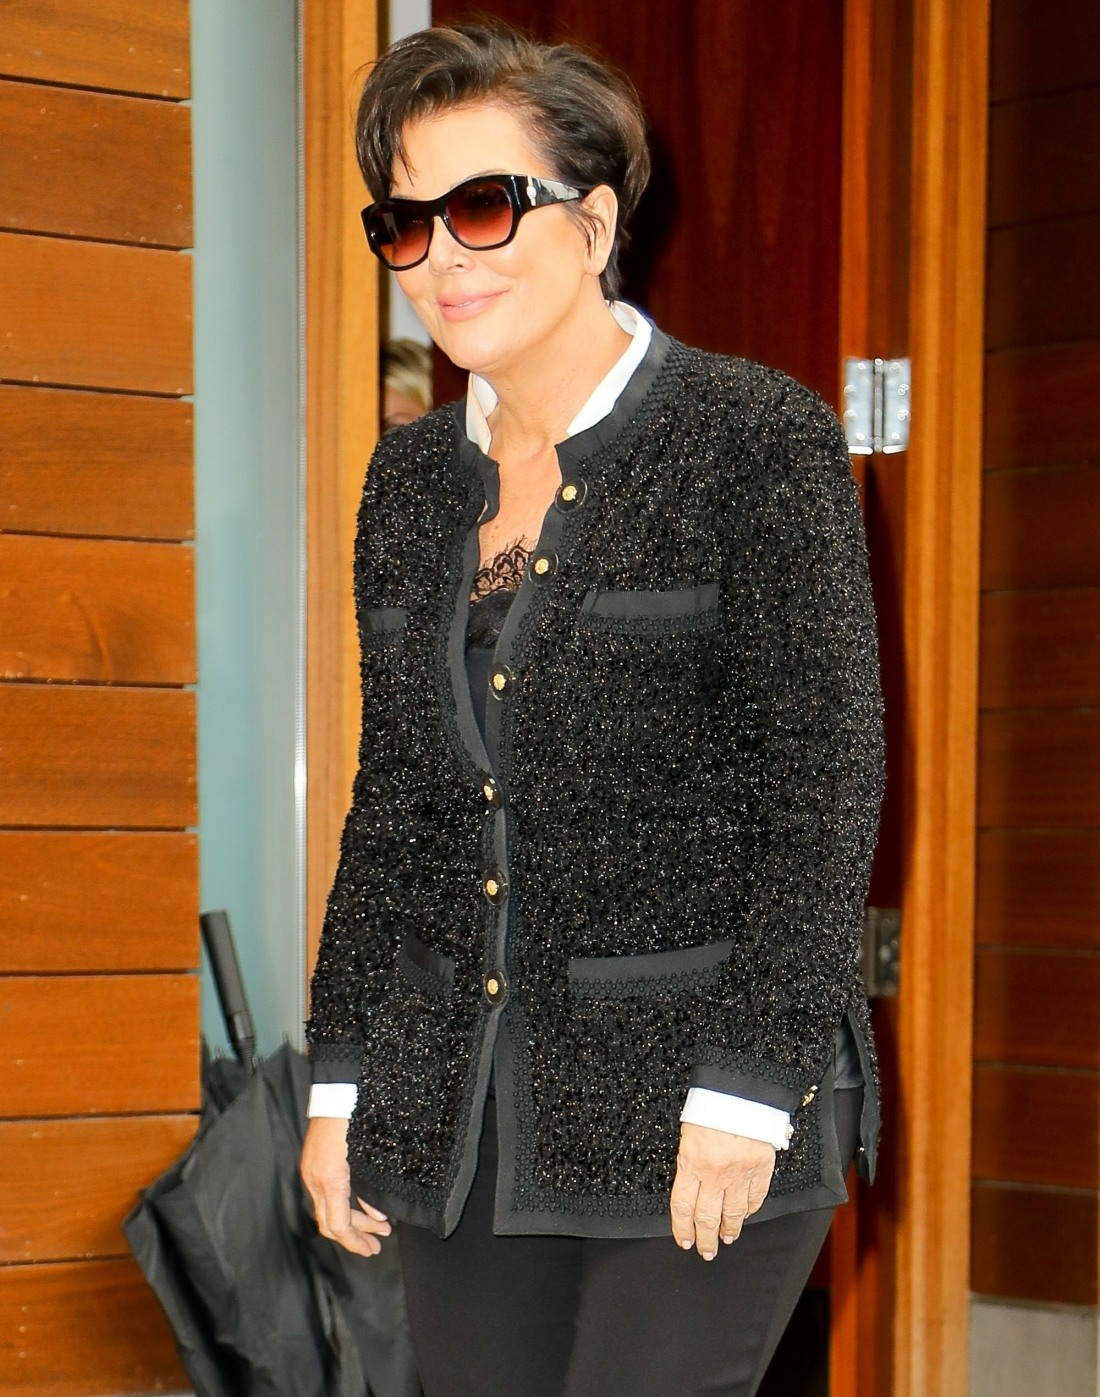 Kris Jenner is all smiles after signing the new 'KUWTK' deal